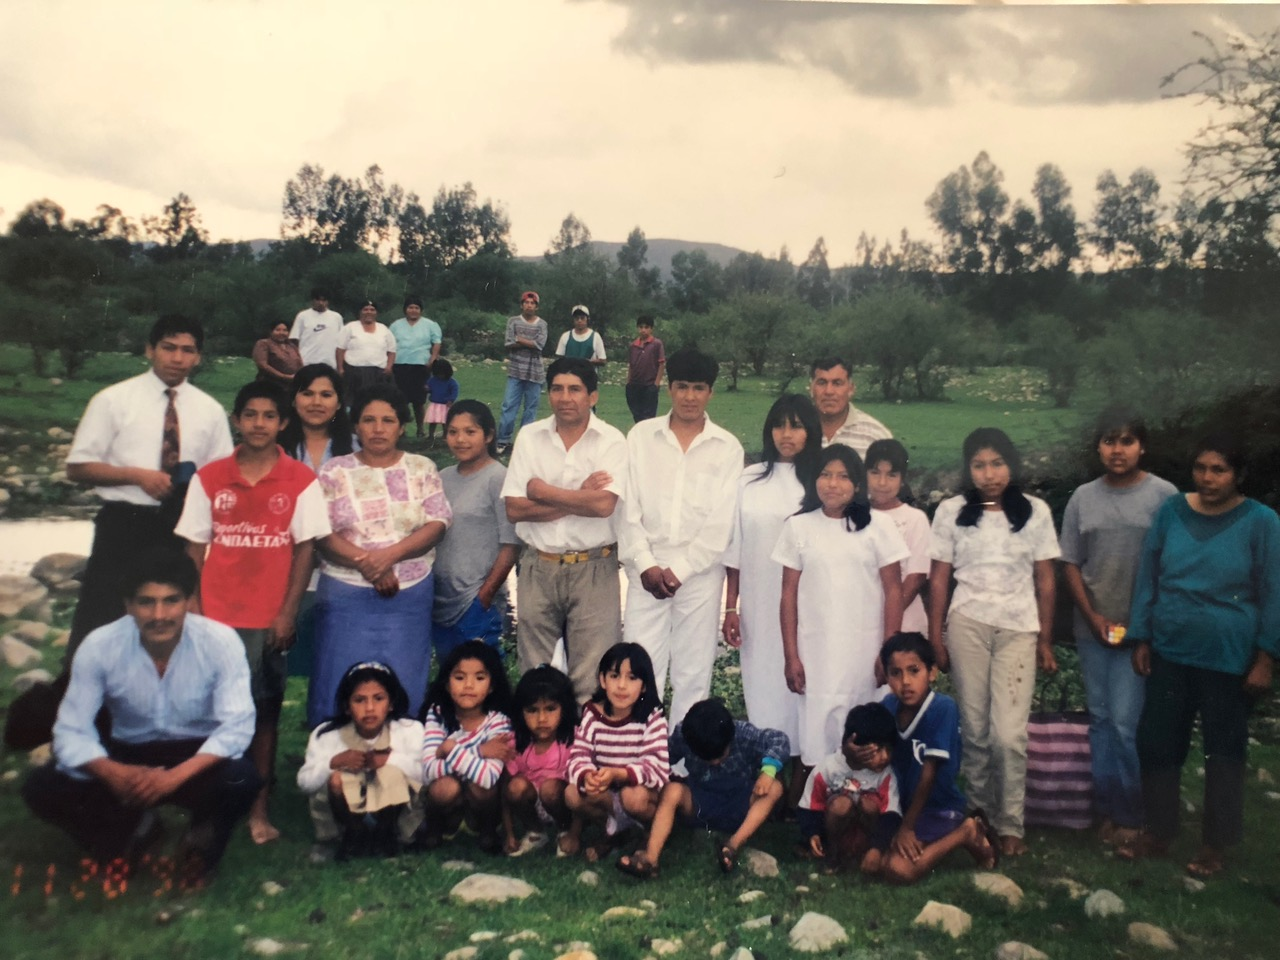 The Sanchez extended family 20 years ago. Since the initial baptism of Naval Sanchez and his wife and son, many of their family members have been baptized and their local branch has grown into a stake.